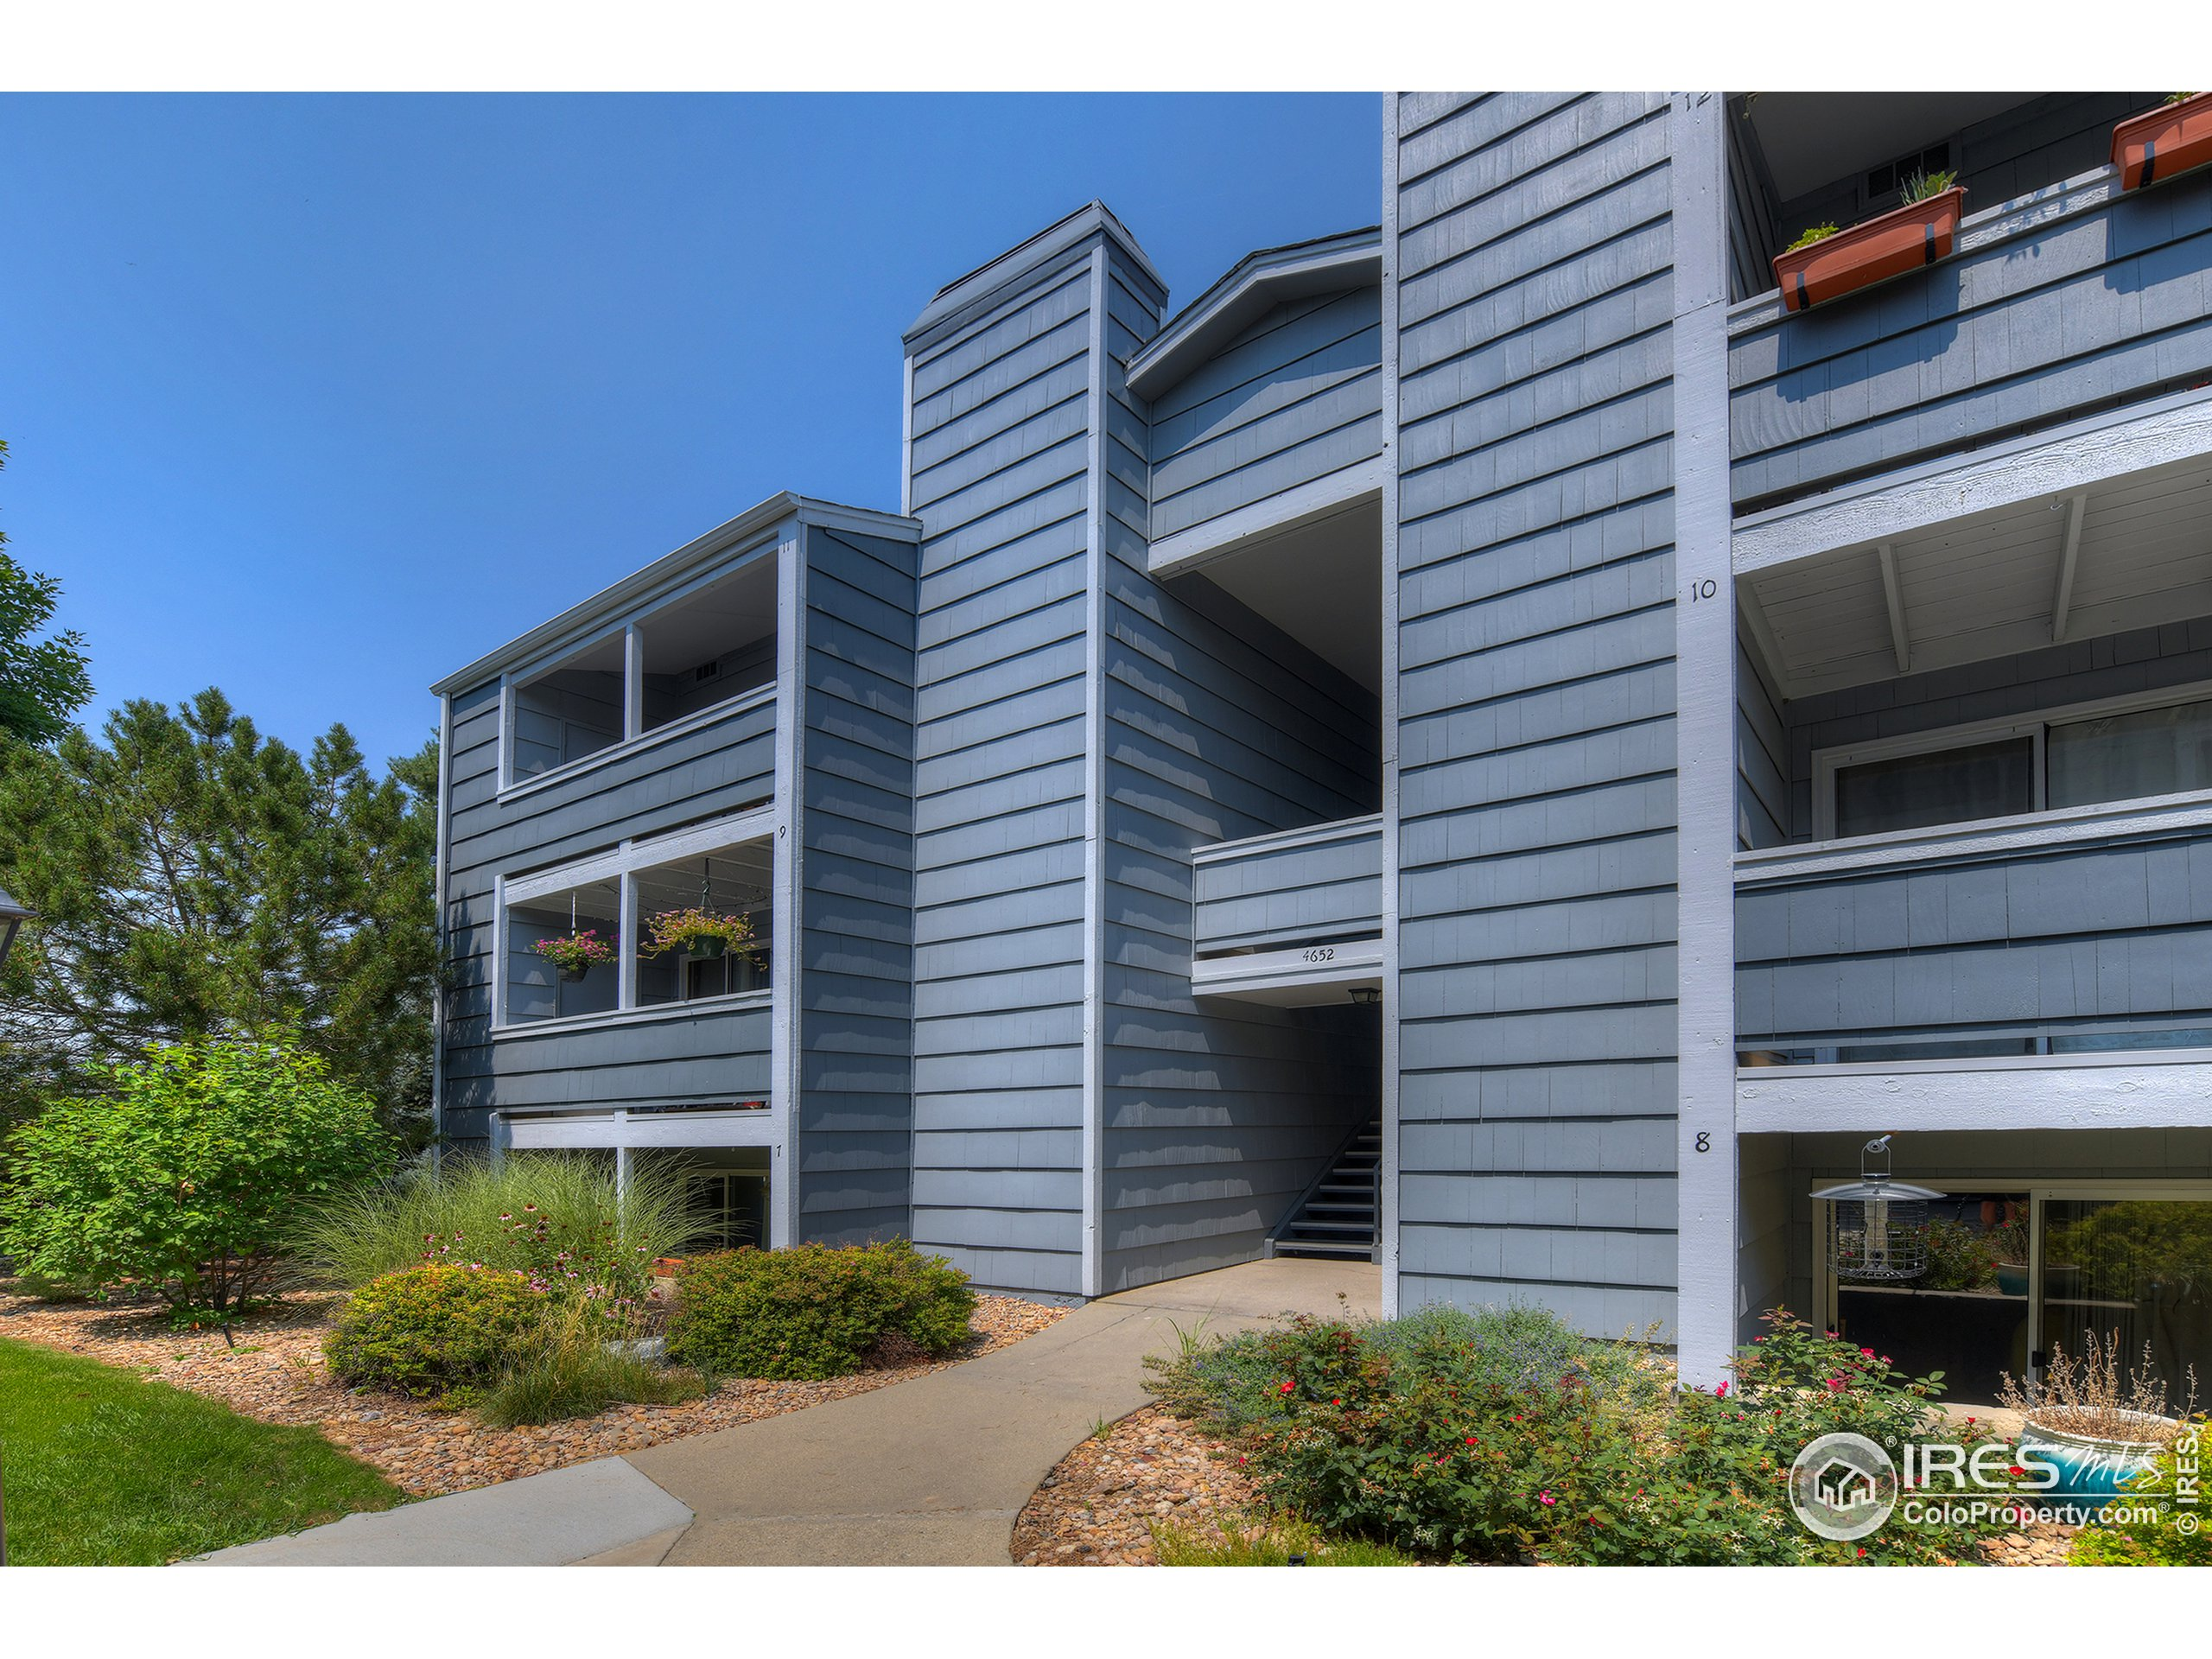 4652 White Rock Cir # 7, Boulder-CO  $279,500.00 *Ground floor unit one bedroom and one bath*